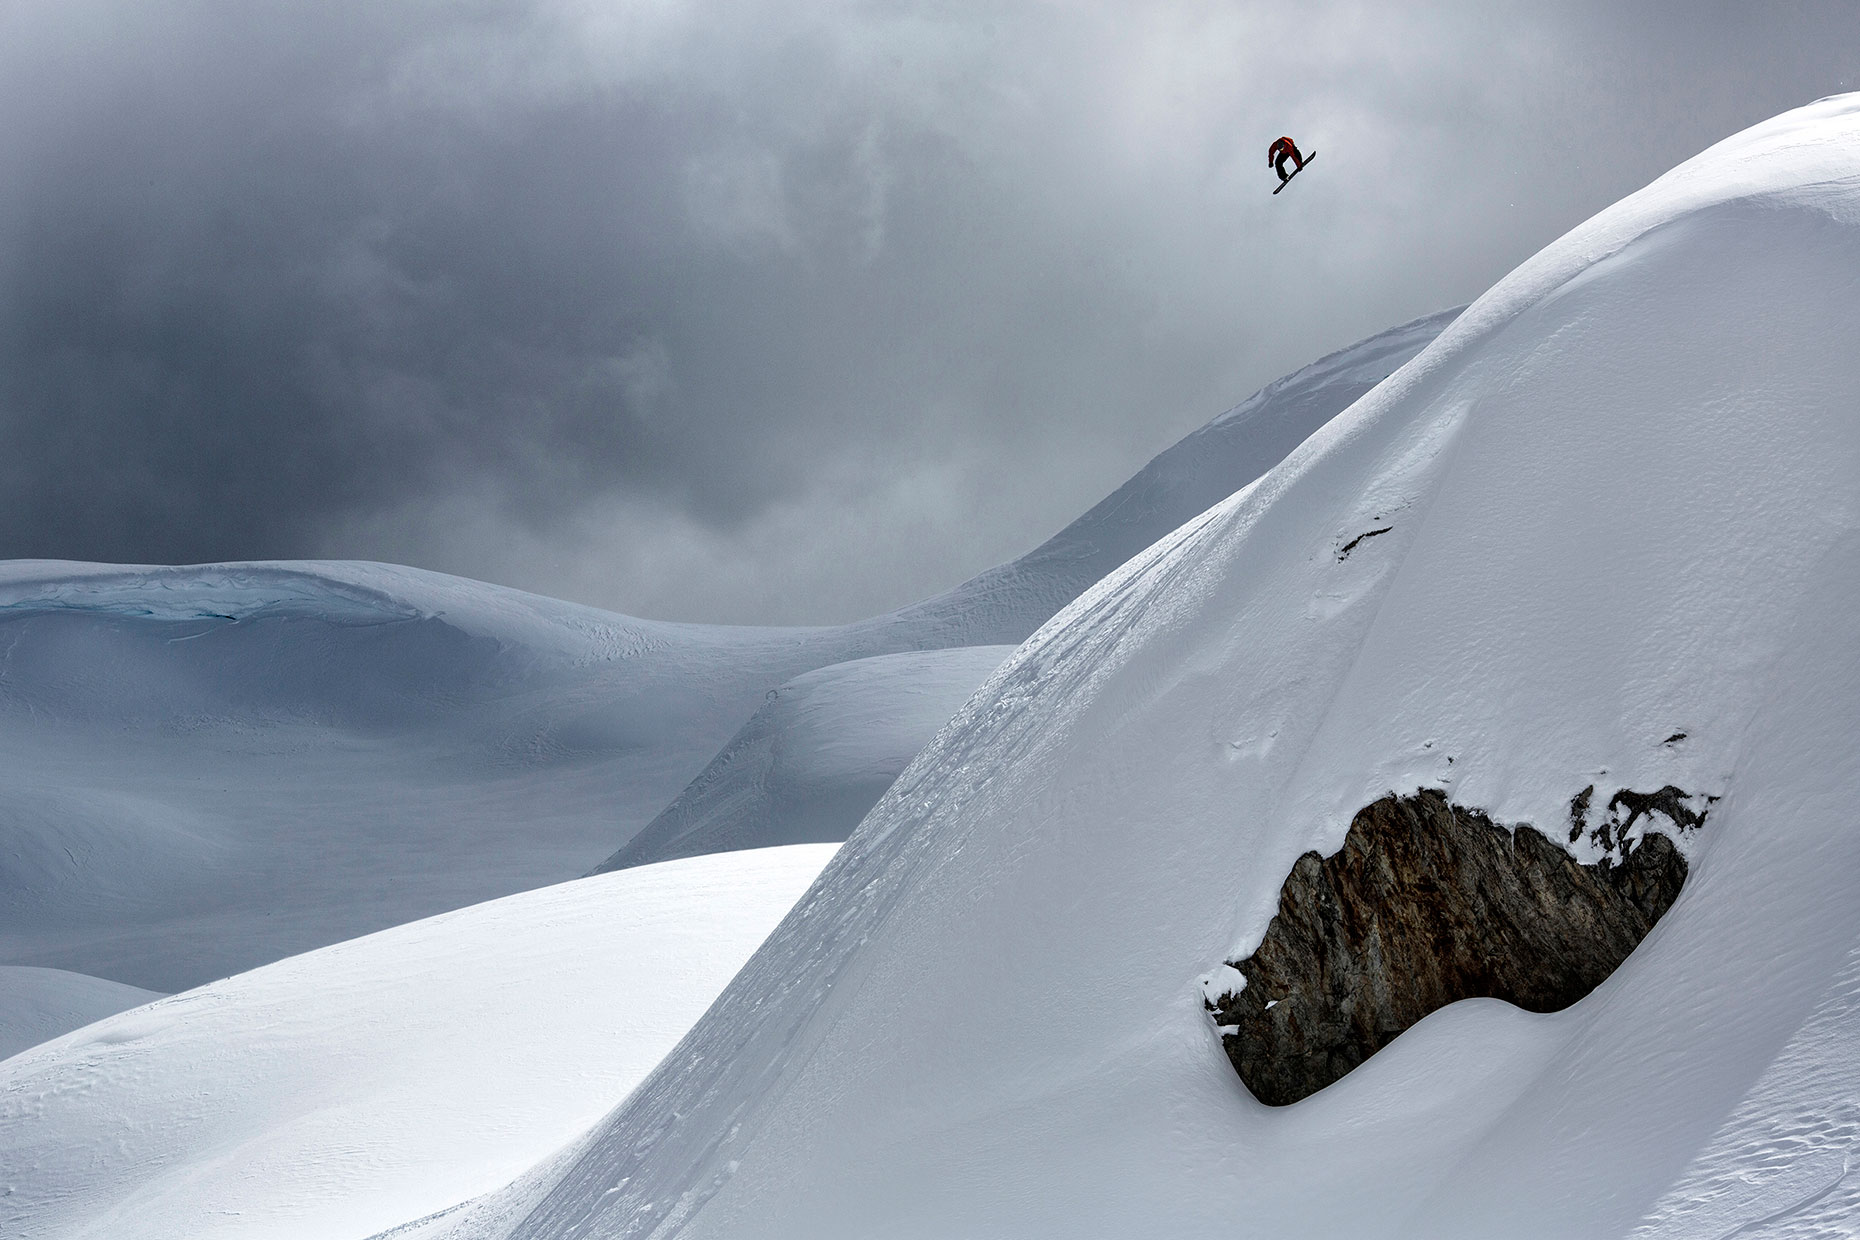 18_pat_moore_whistler_backcountry_jussi_grznar-9184